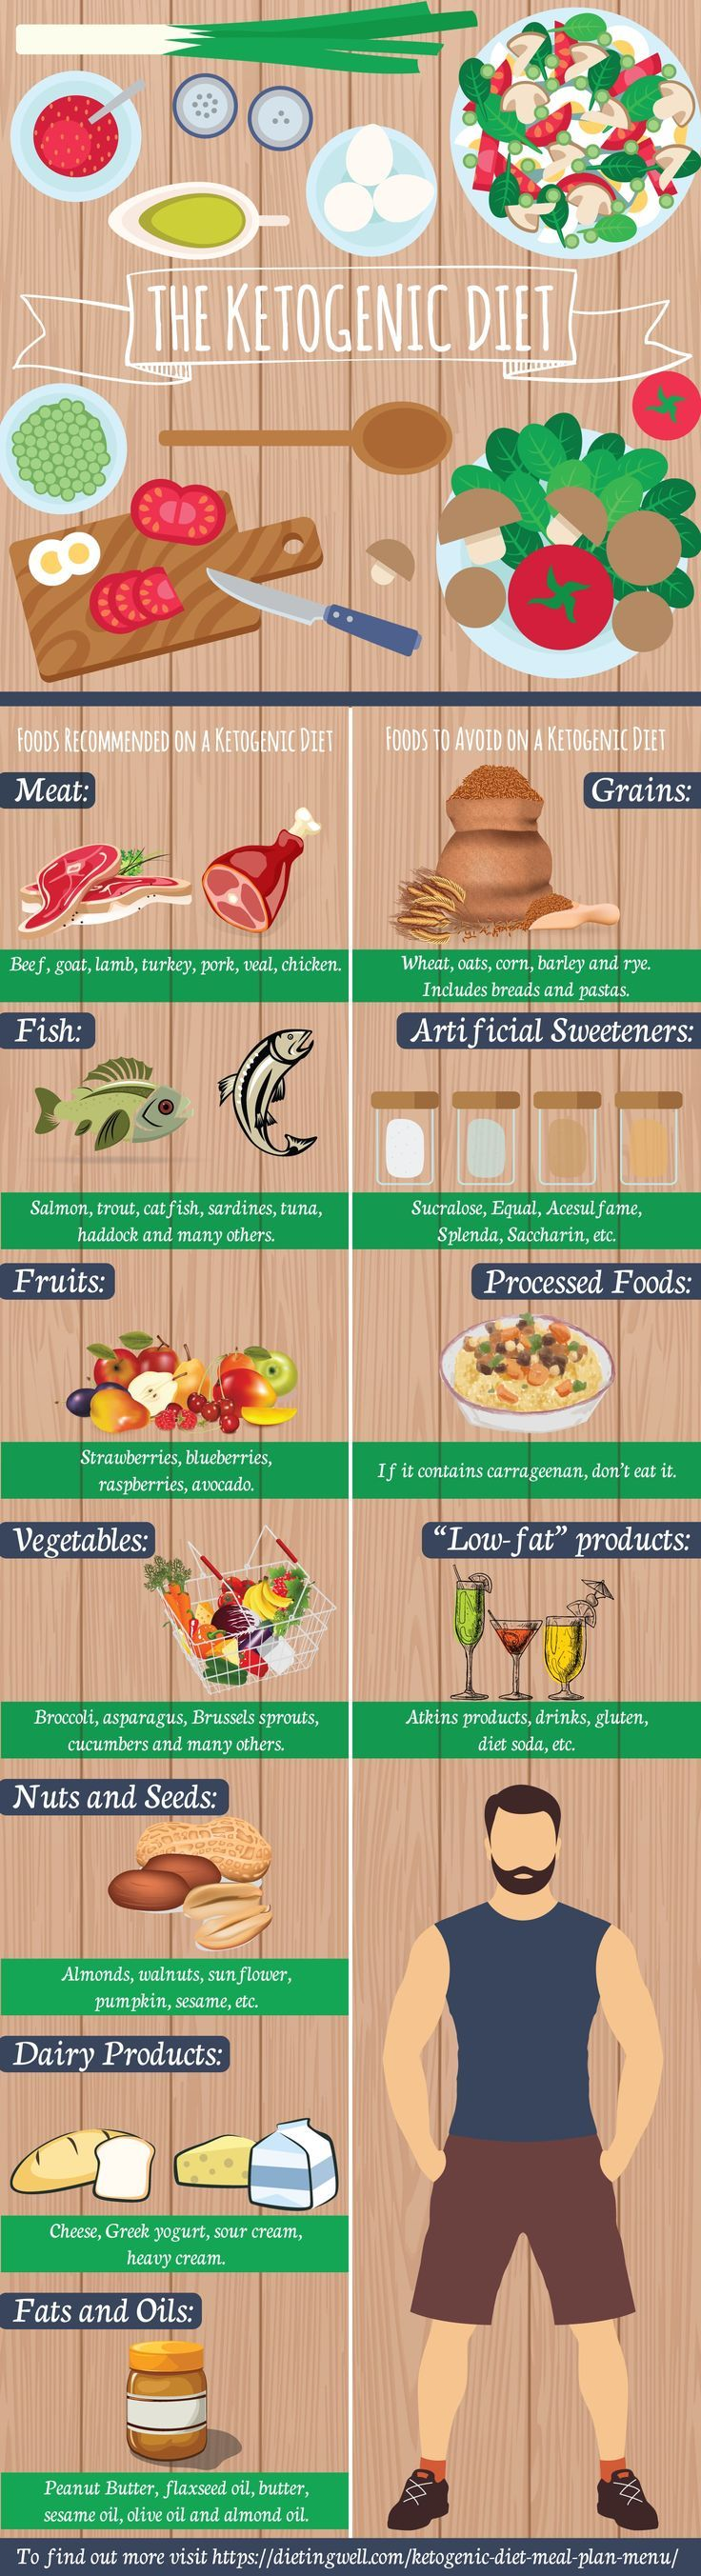 Ways to lose weight fast without diet image 1